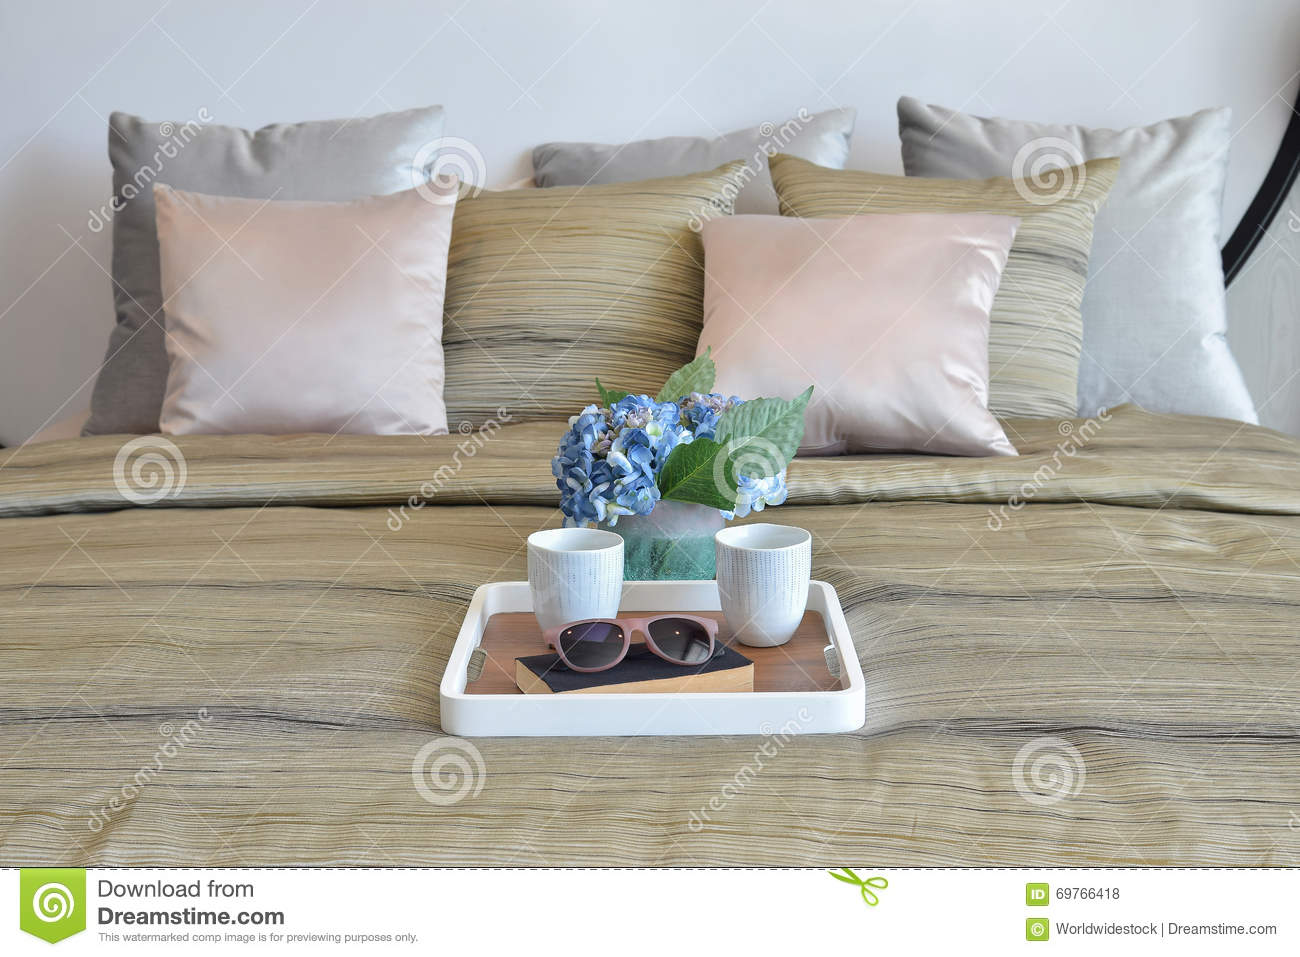 Stylish Bedroom Design With Decorative Tray And Pillows On